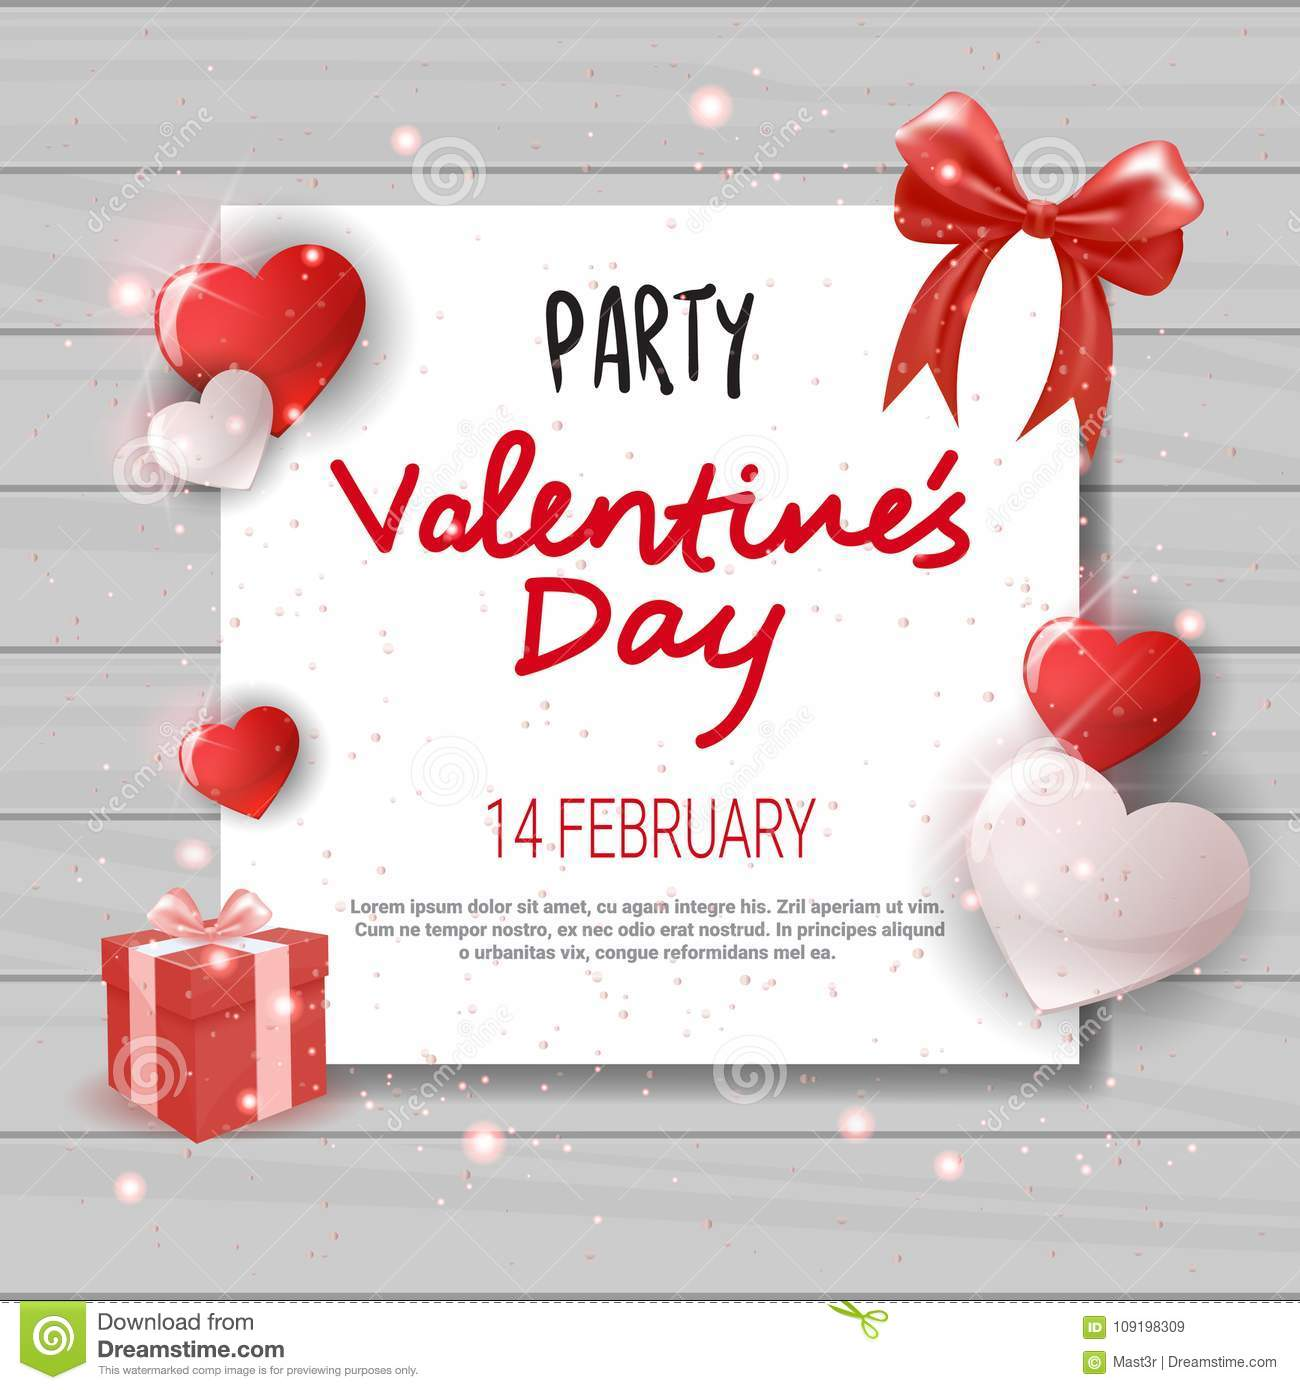 Valentines Day Party Invitation Template Flyer Design Love Holiday - Valentine's day invitation template